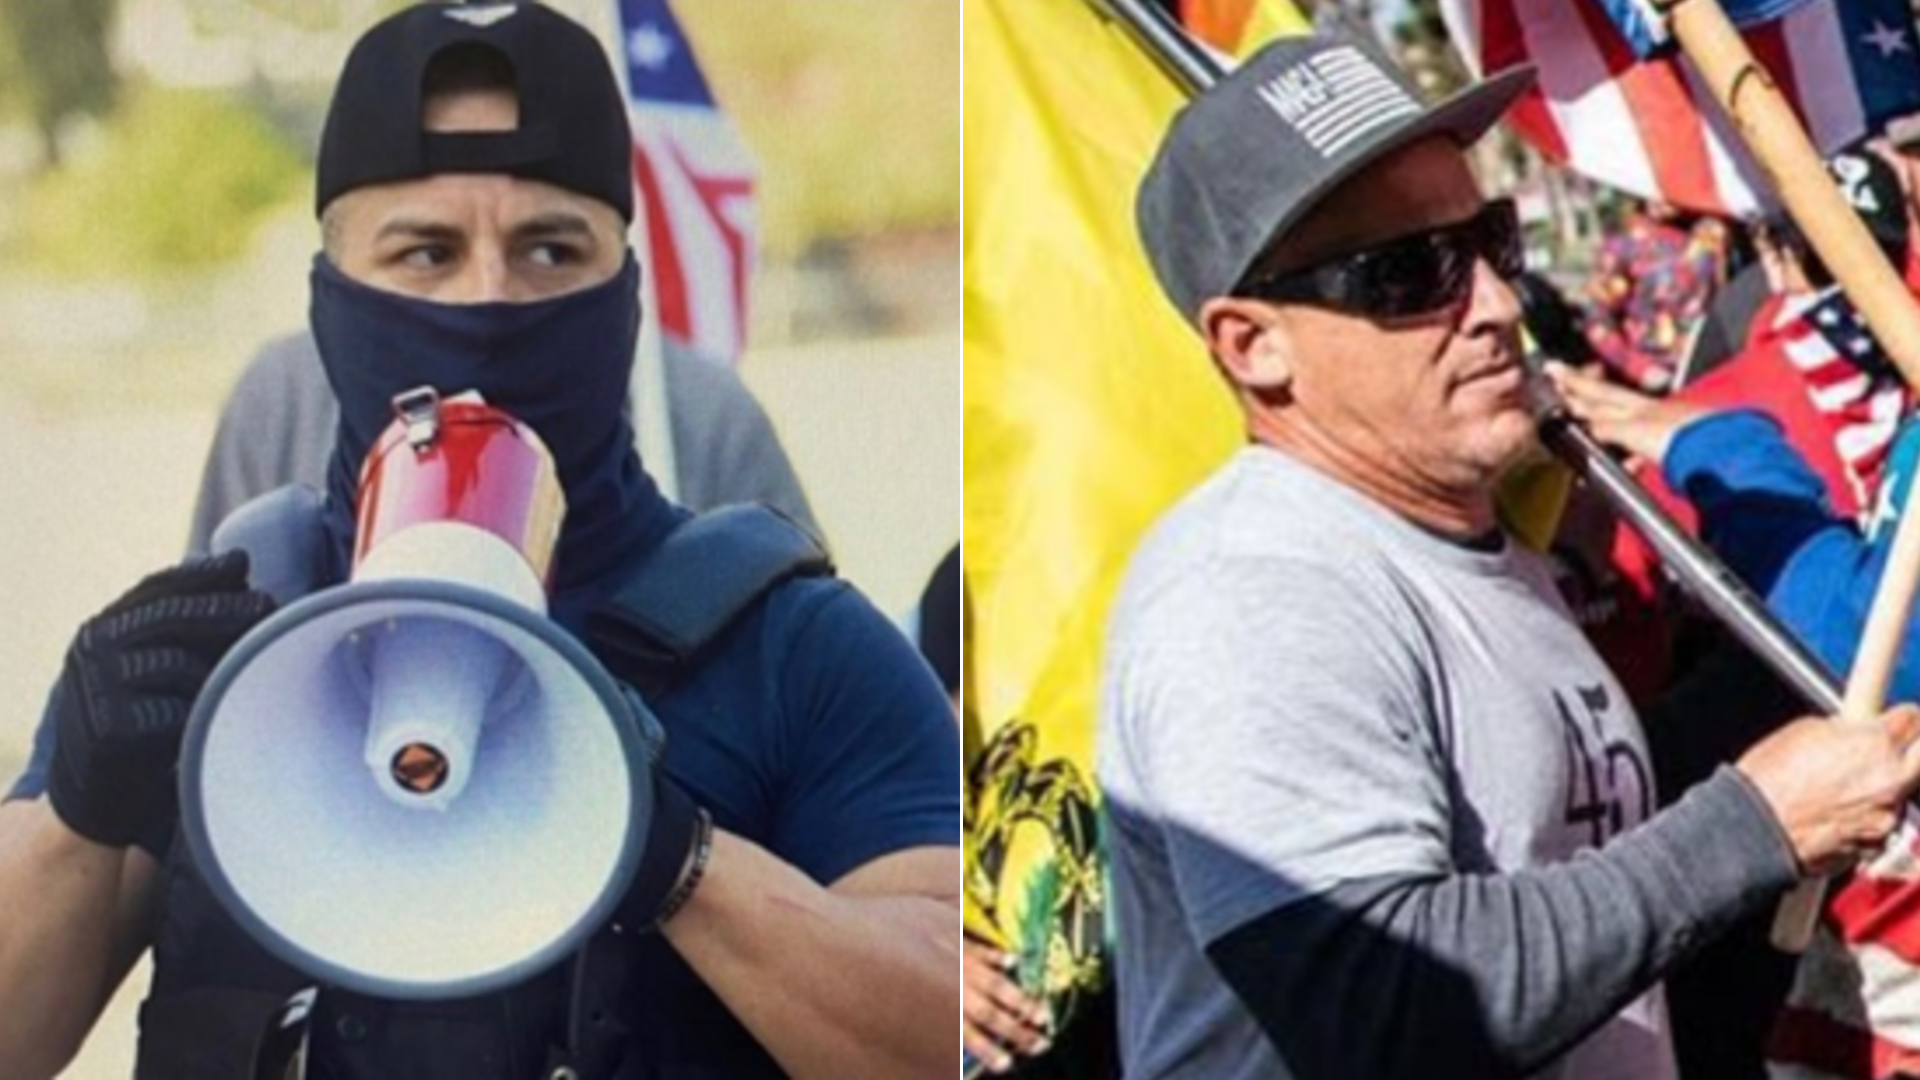 Two men identified as persons of interest in a suspected hate crime attack at a pro-Trump protest in downtown Los Angeles on Jan. 6, 2021, are seen in images released by the Los Angeles Police Department.